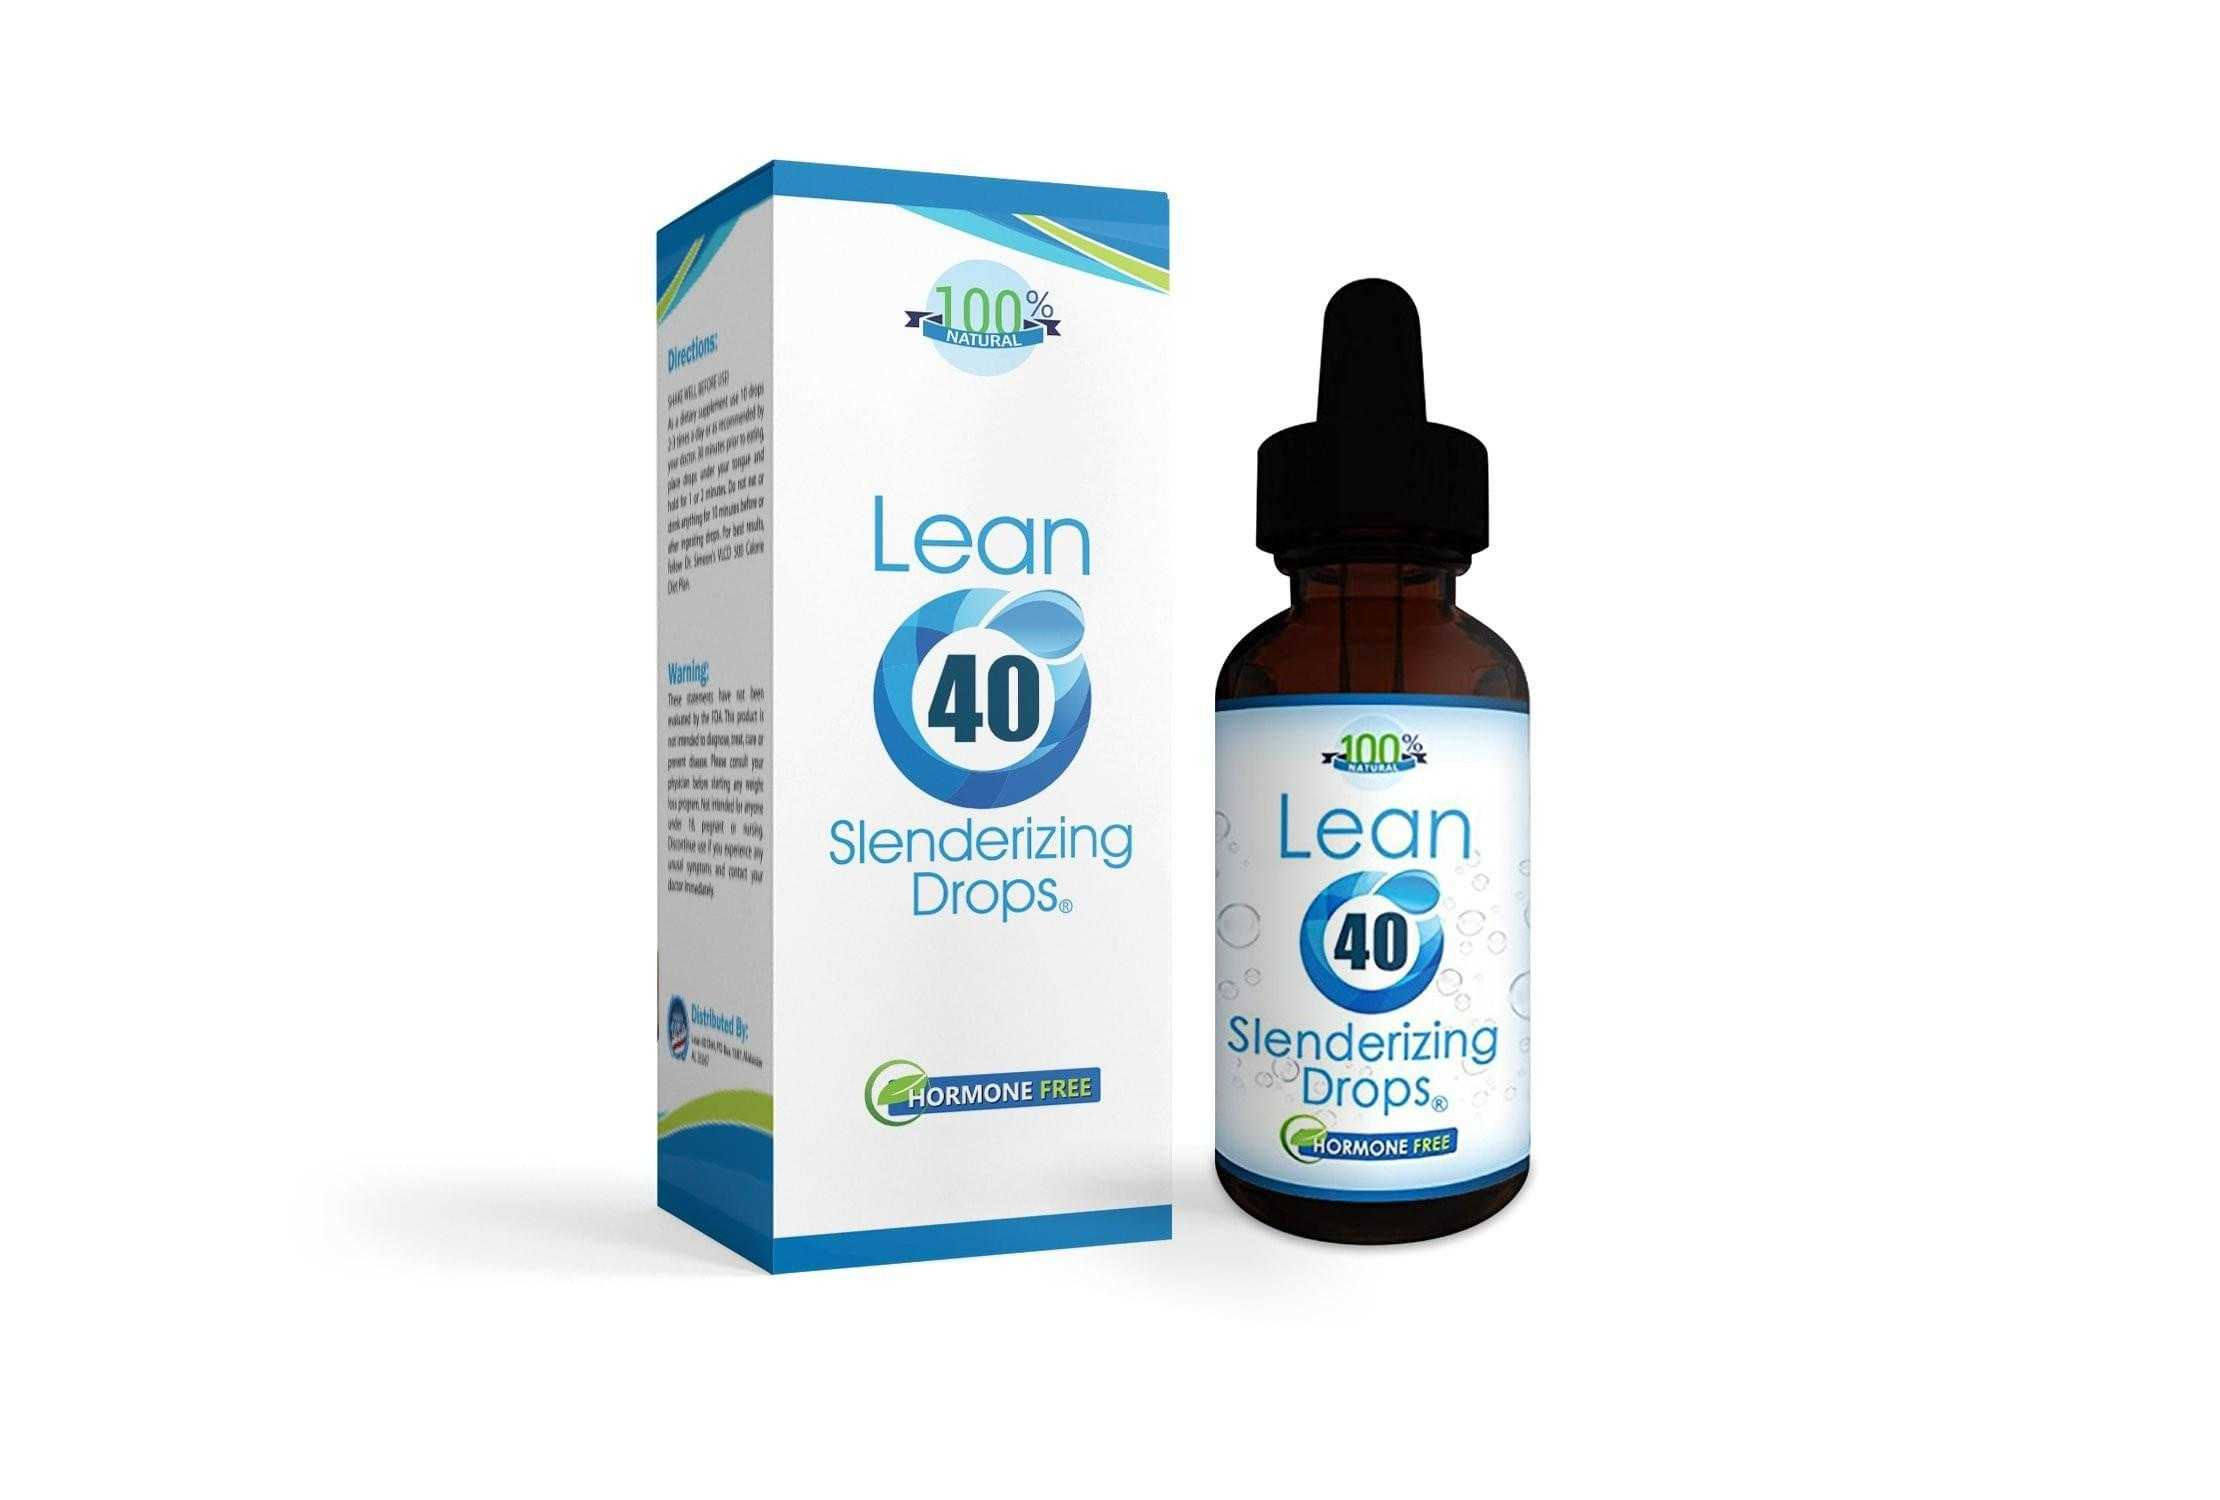 HCG Diet Drops For Weight Loss - 40 Day Program - Lean 40